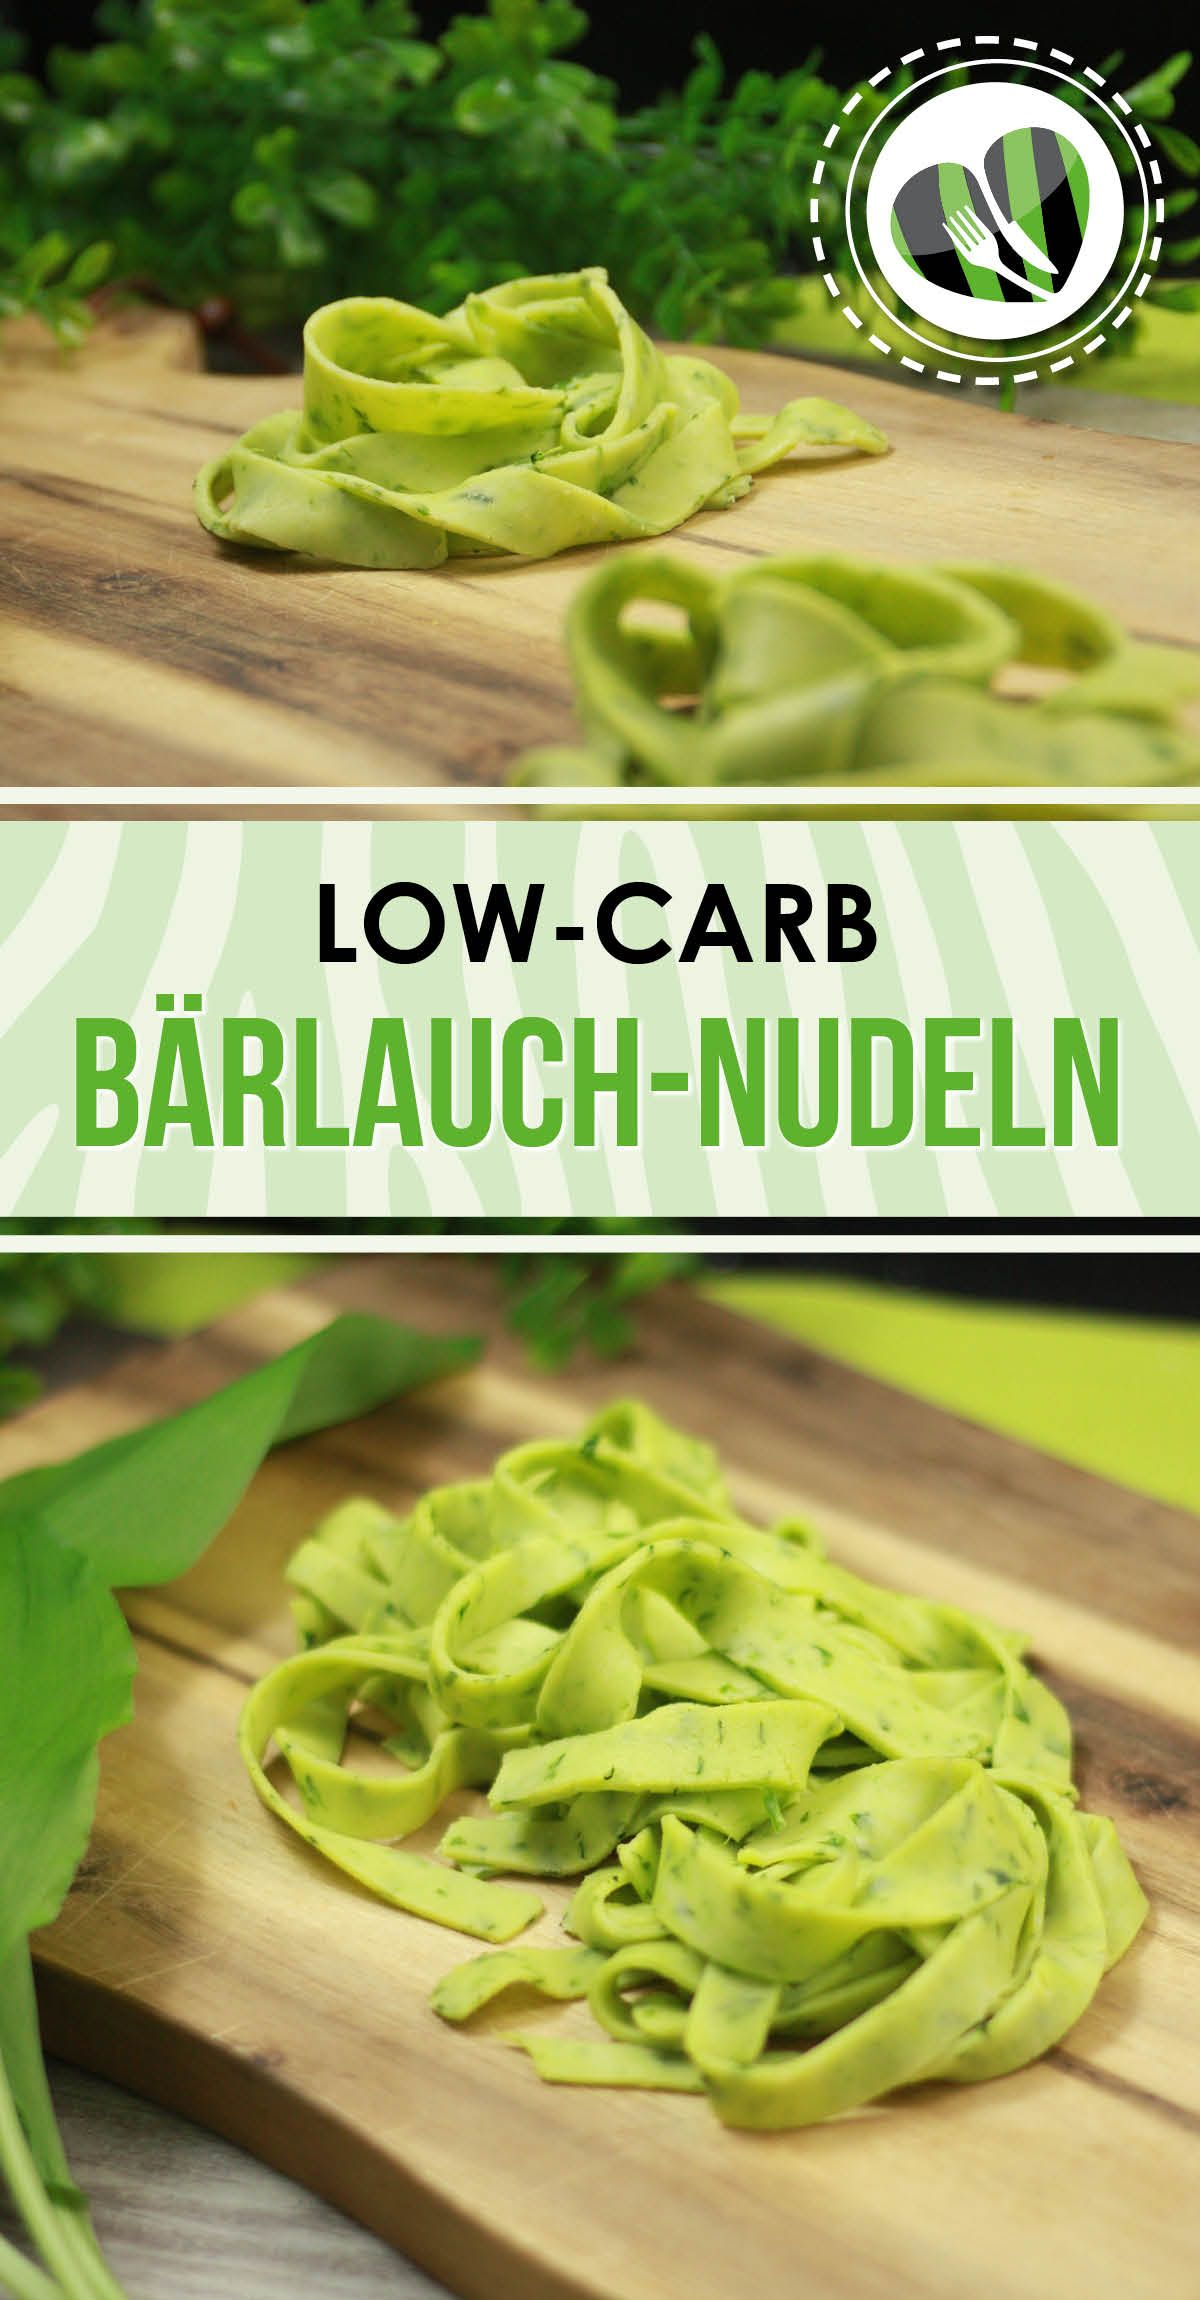 Photo of Low-carb wild garlic noodles